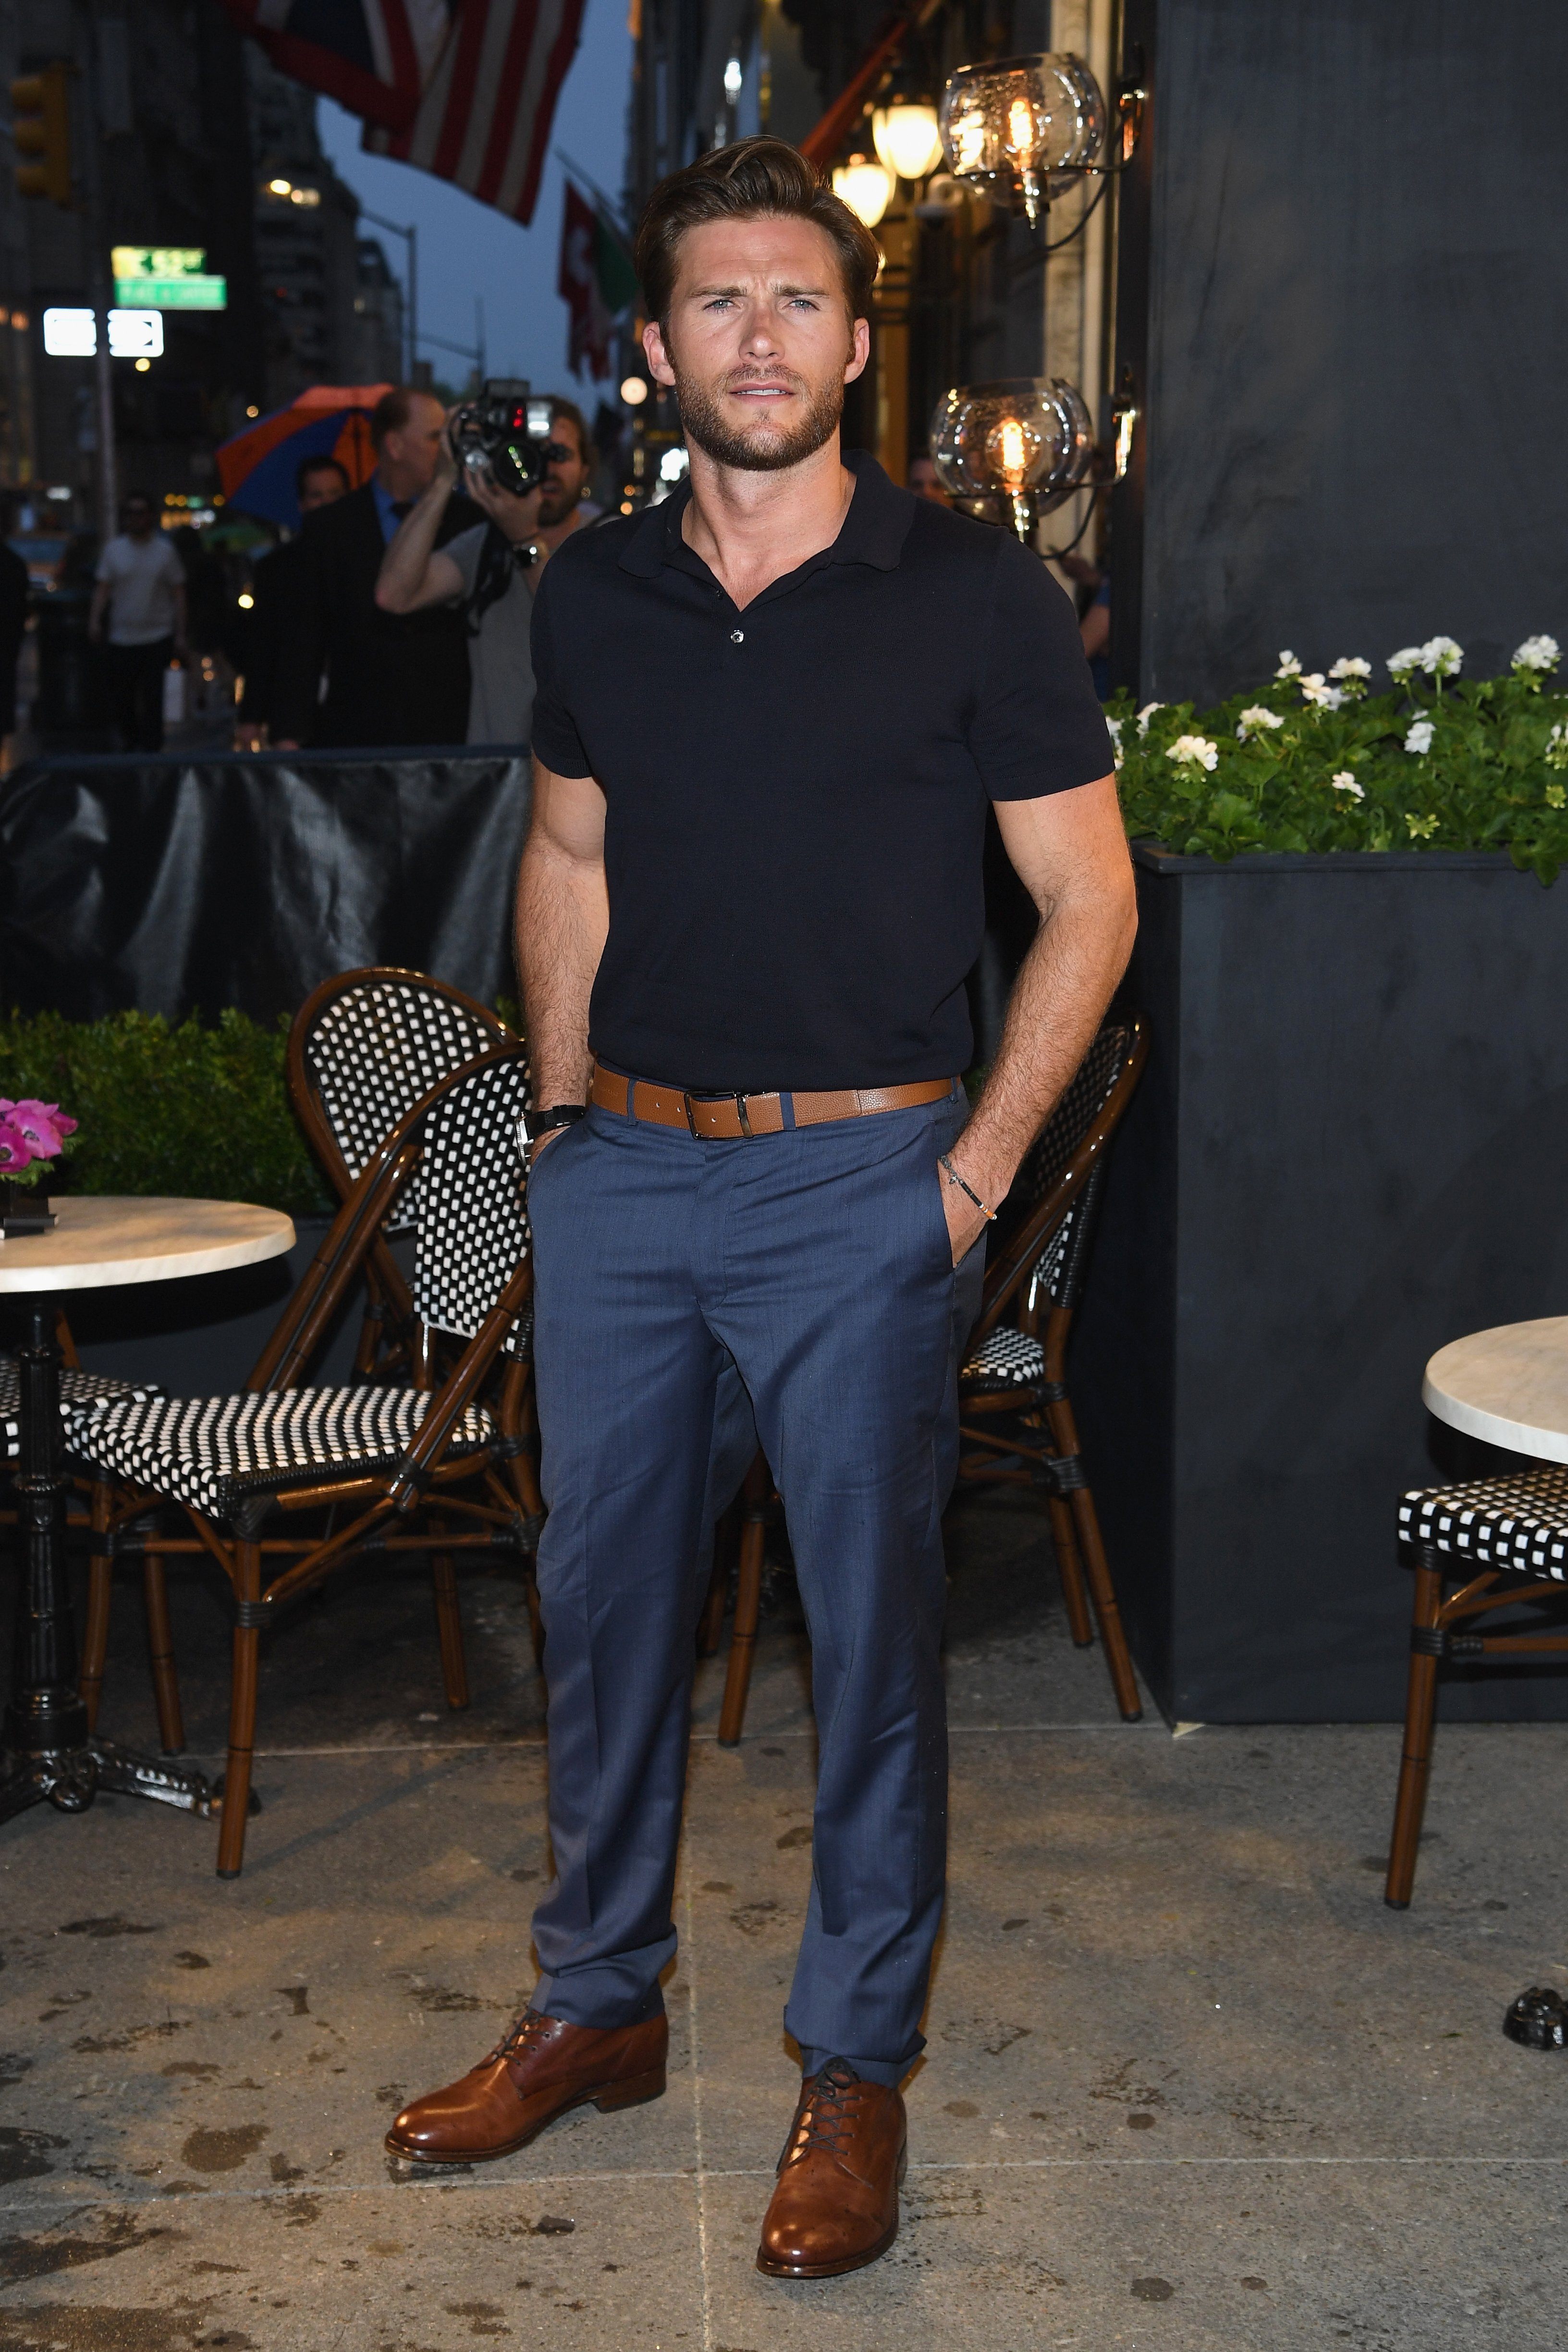 Scott Eastwood on May 3, 2018 in New York City | Source: Getty Images